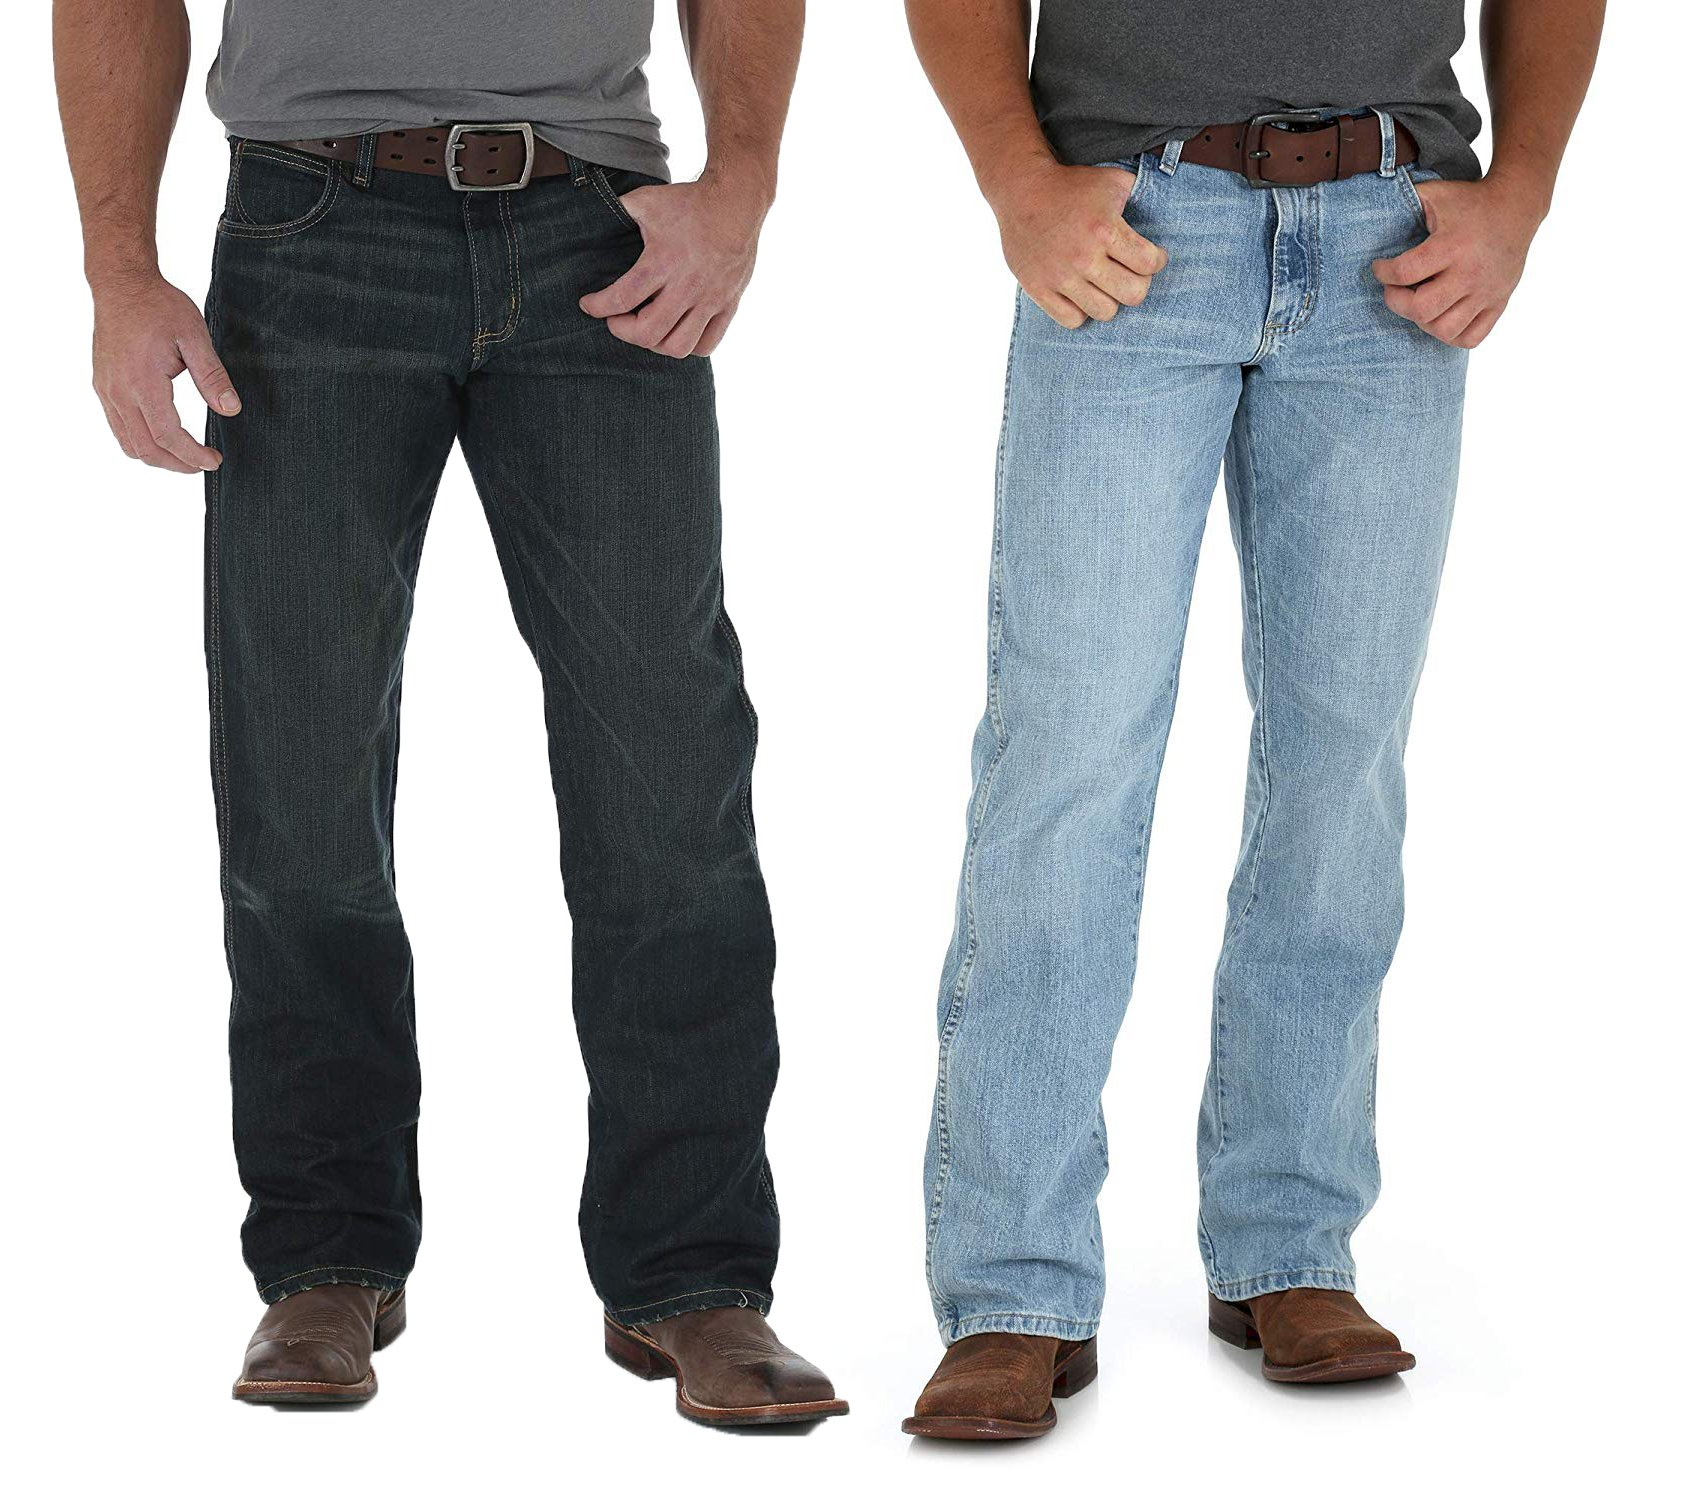 677c030a335 Details about Worn Black Wrangler Men's Retro Relaxed-Fit Bootcut Jean -  WRT20WB